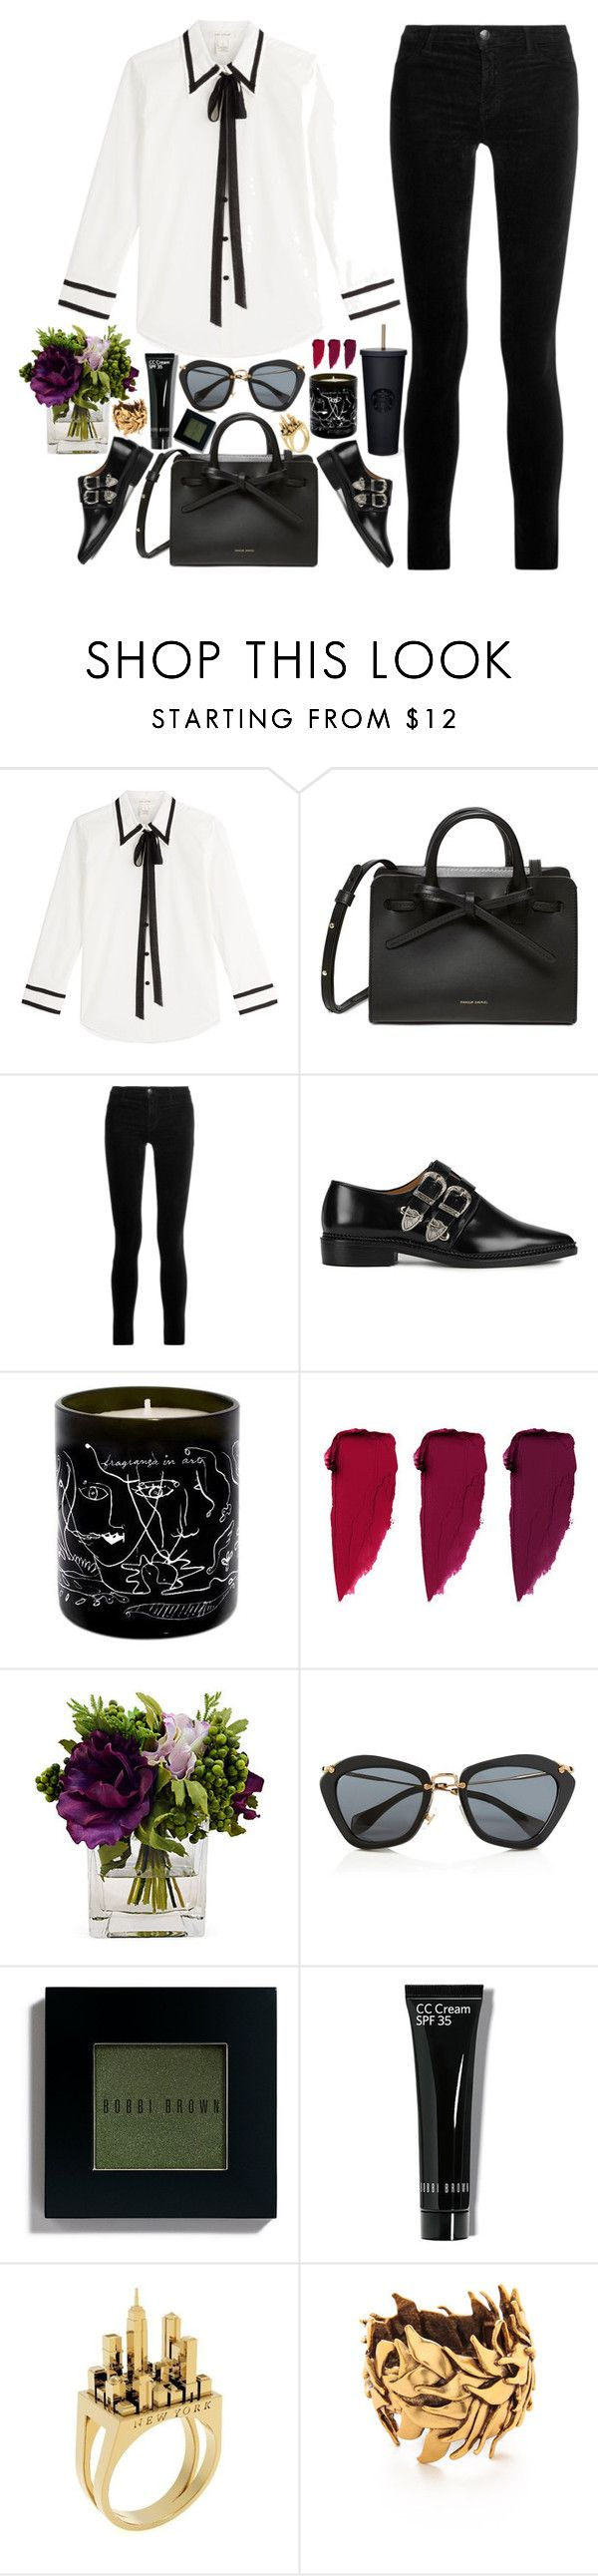 """""""Marc Jacobs look"""" by imperiouspuma ❤ liked on Polyvore featuring Marc Jacobs, J Brand, Toga, Maison Bereto, The French Bee, Miu Miu, Bobbi Brown Cosmetics, CC, Artelier by Cristina Ramella and Oscar de la Renta"""